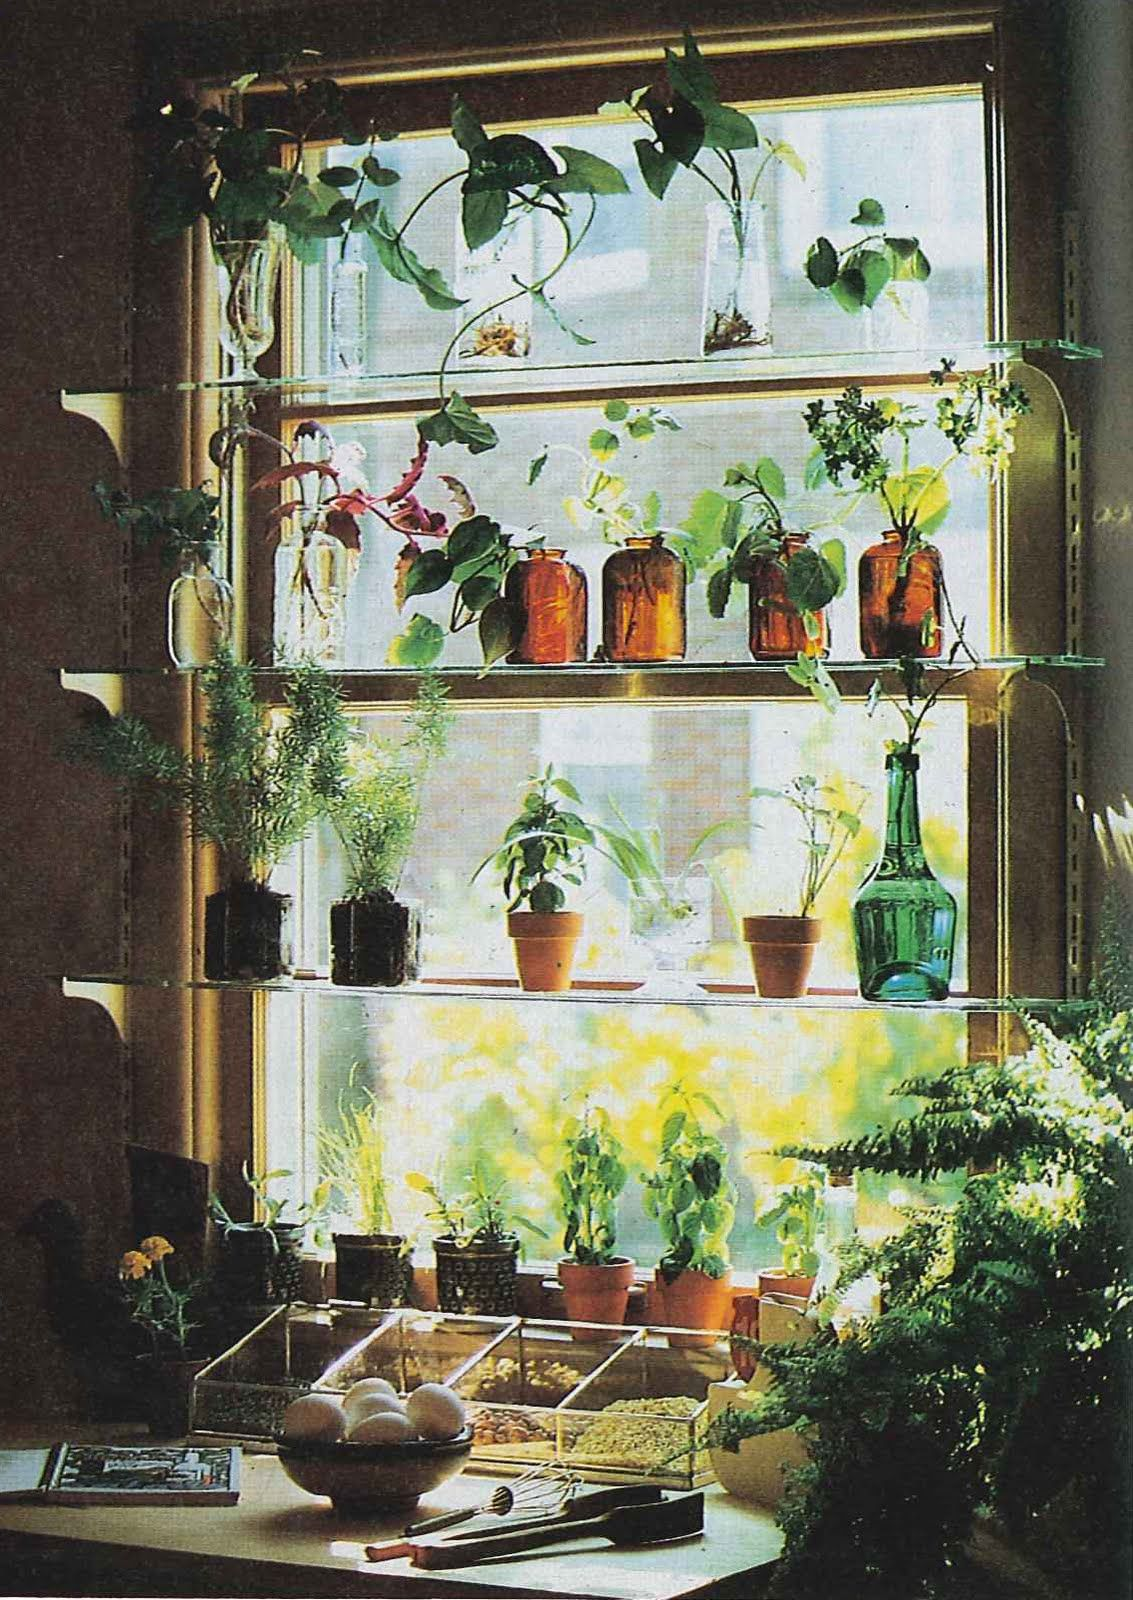 Plant Shelving Indoor Kitchen Window Idea Kitchen Plants Window Shelves